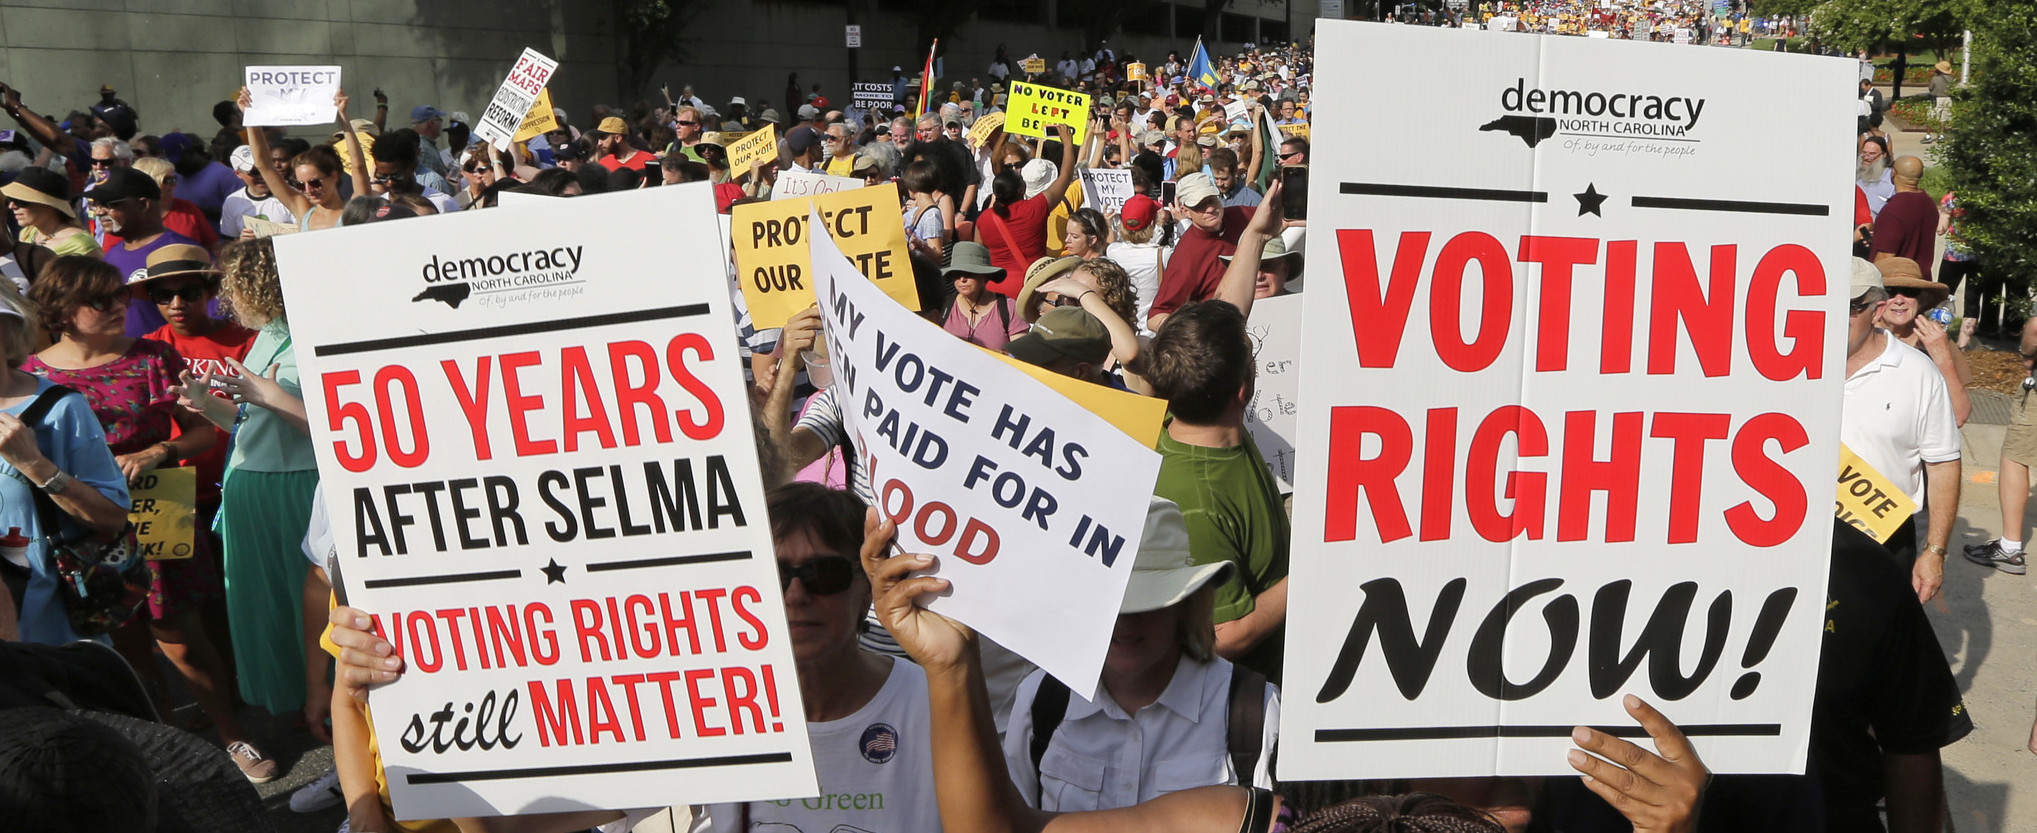 A demonstration supporting voting rights ( Image )